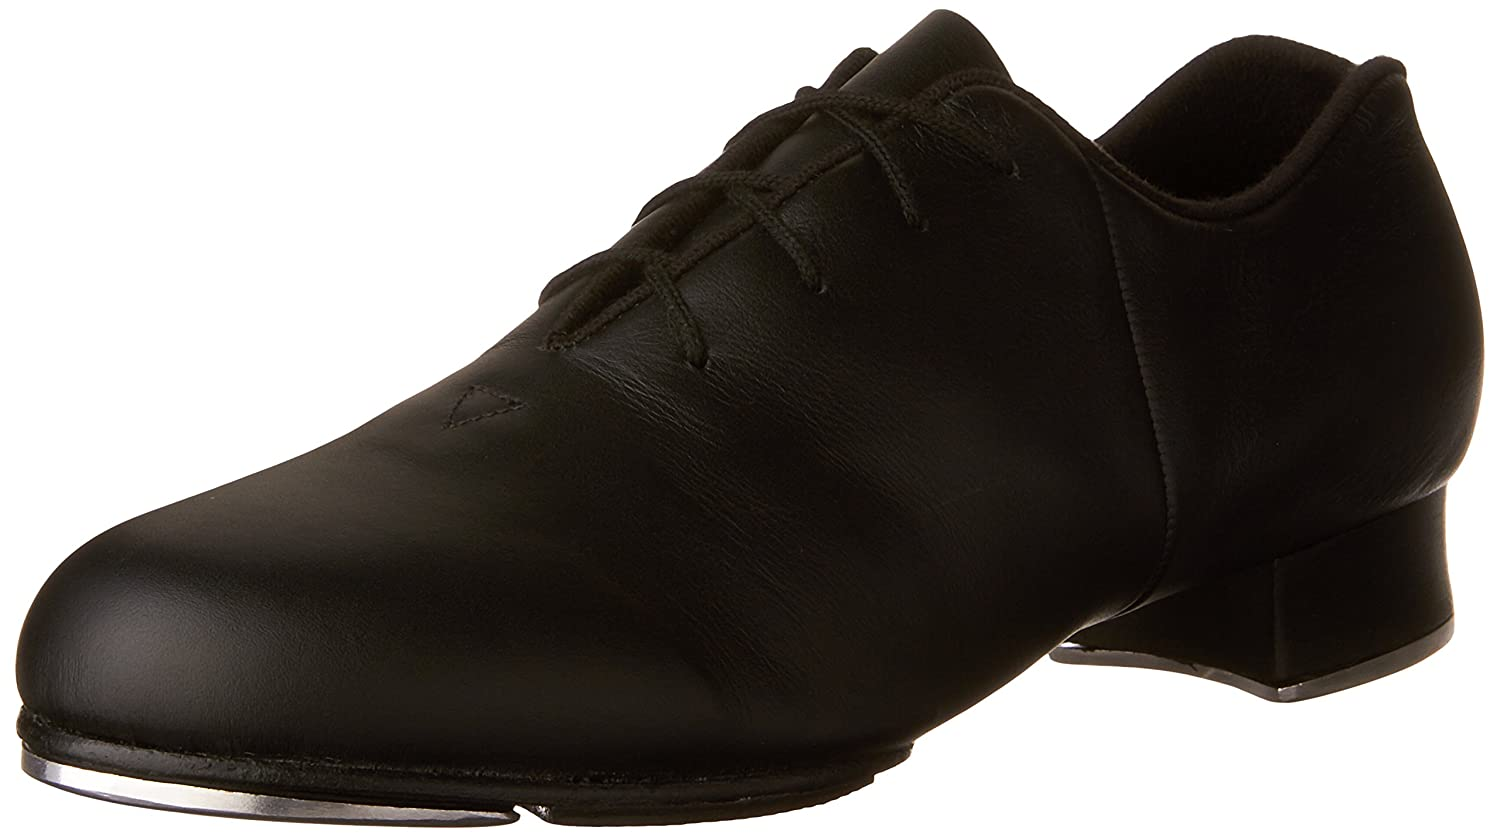 Bloch Dance Women's Tap-Flex Tap Shoe B0041HYYYQ 6 N US|Black